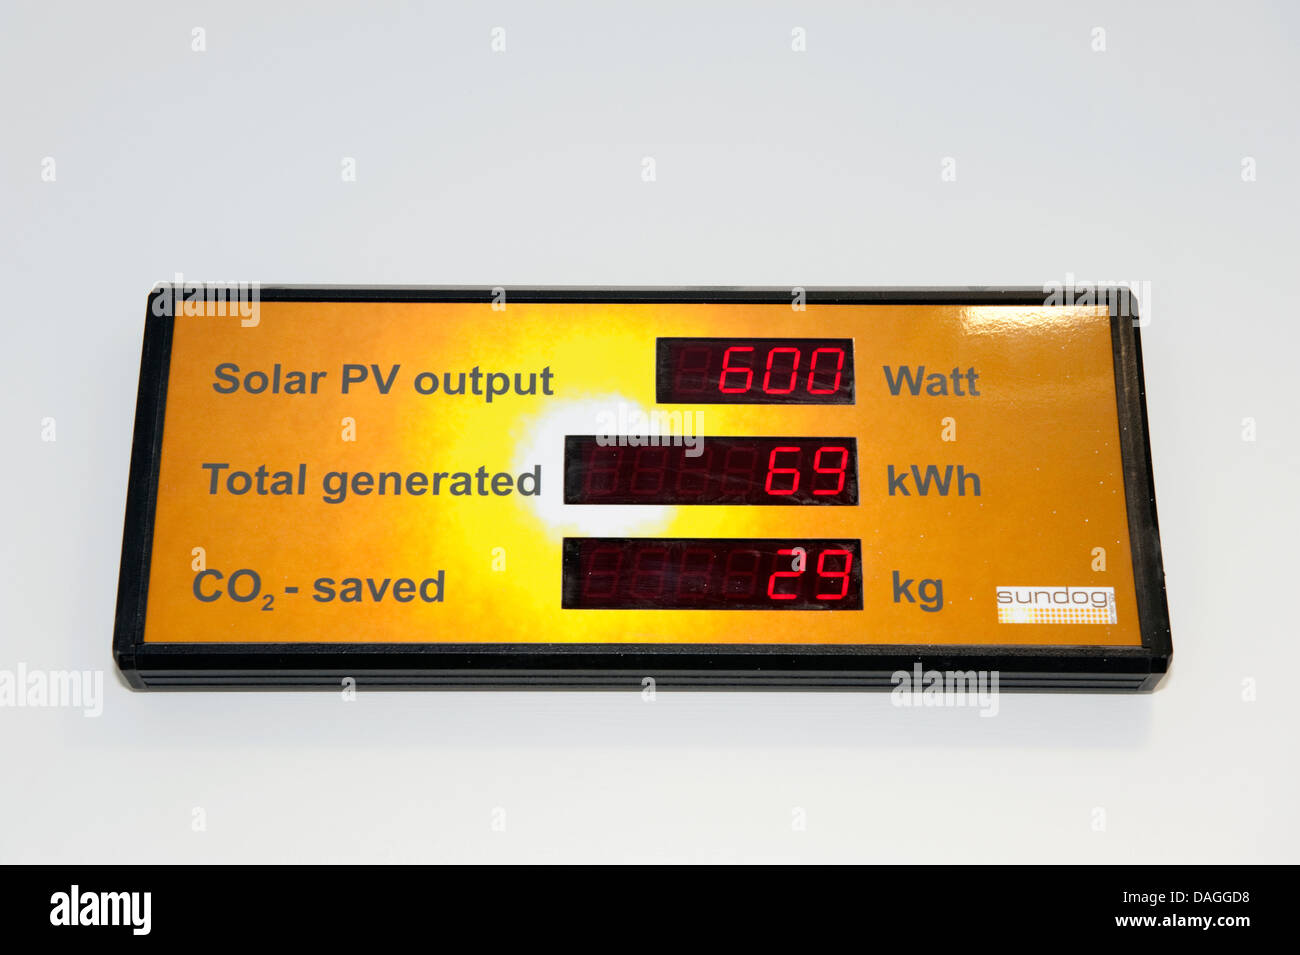 Industrial Factory Solar Panel output display - Stock Image